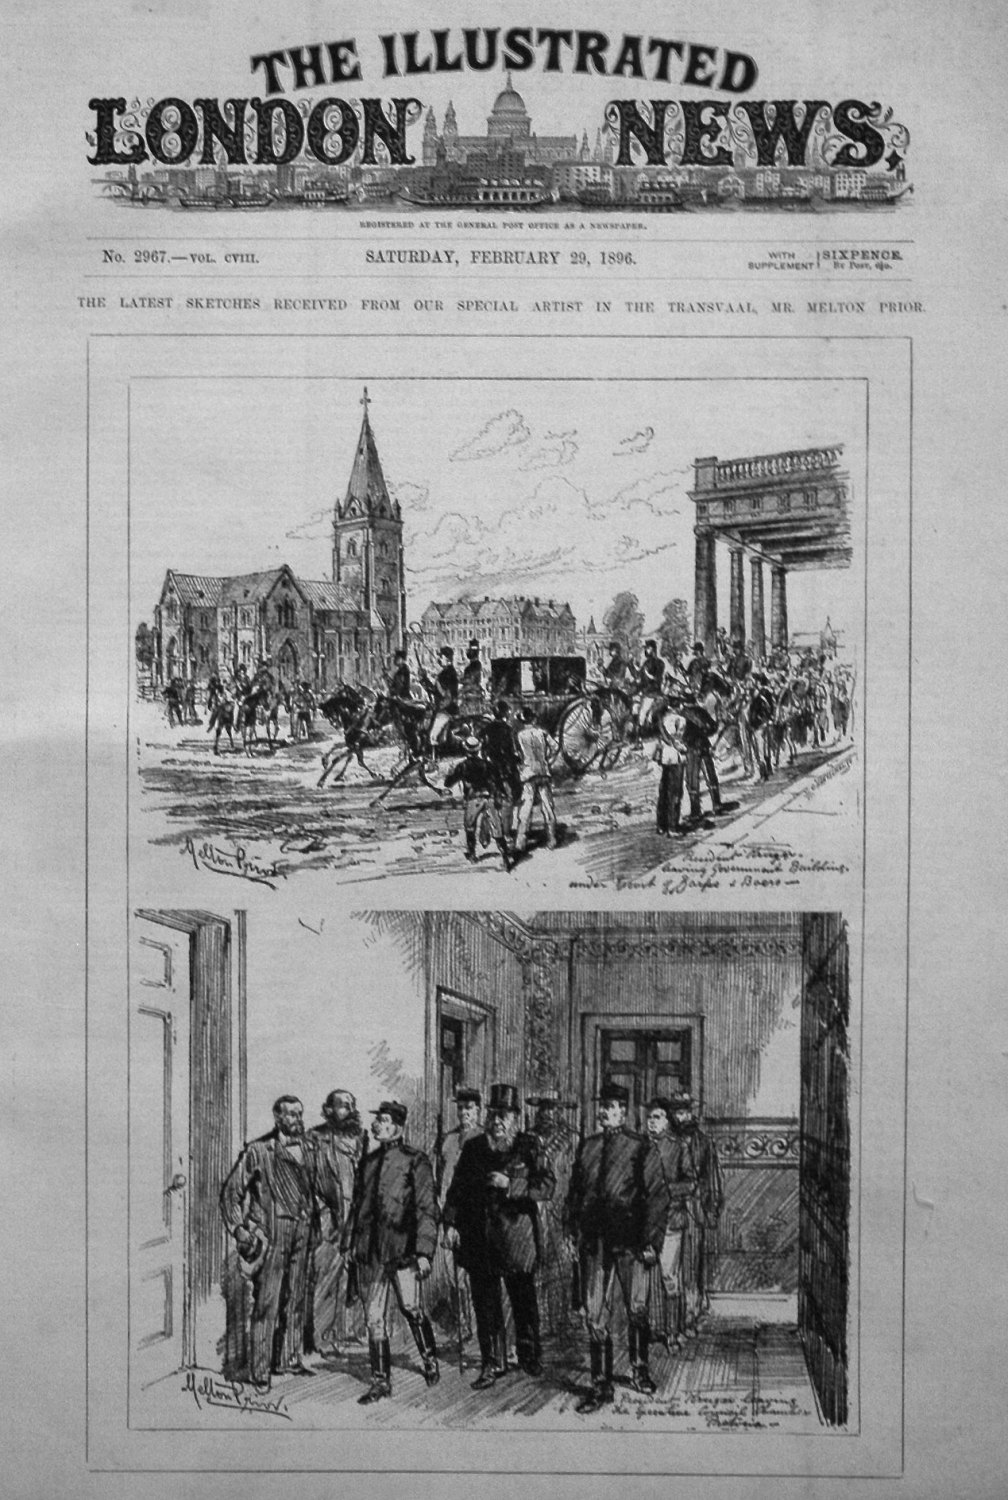 Illustrated London News February 29th 1896.